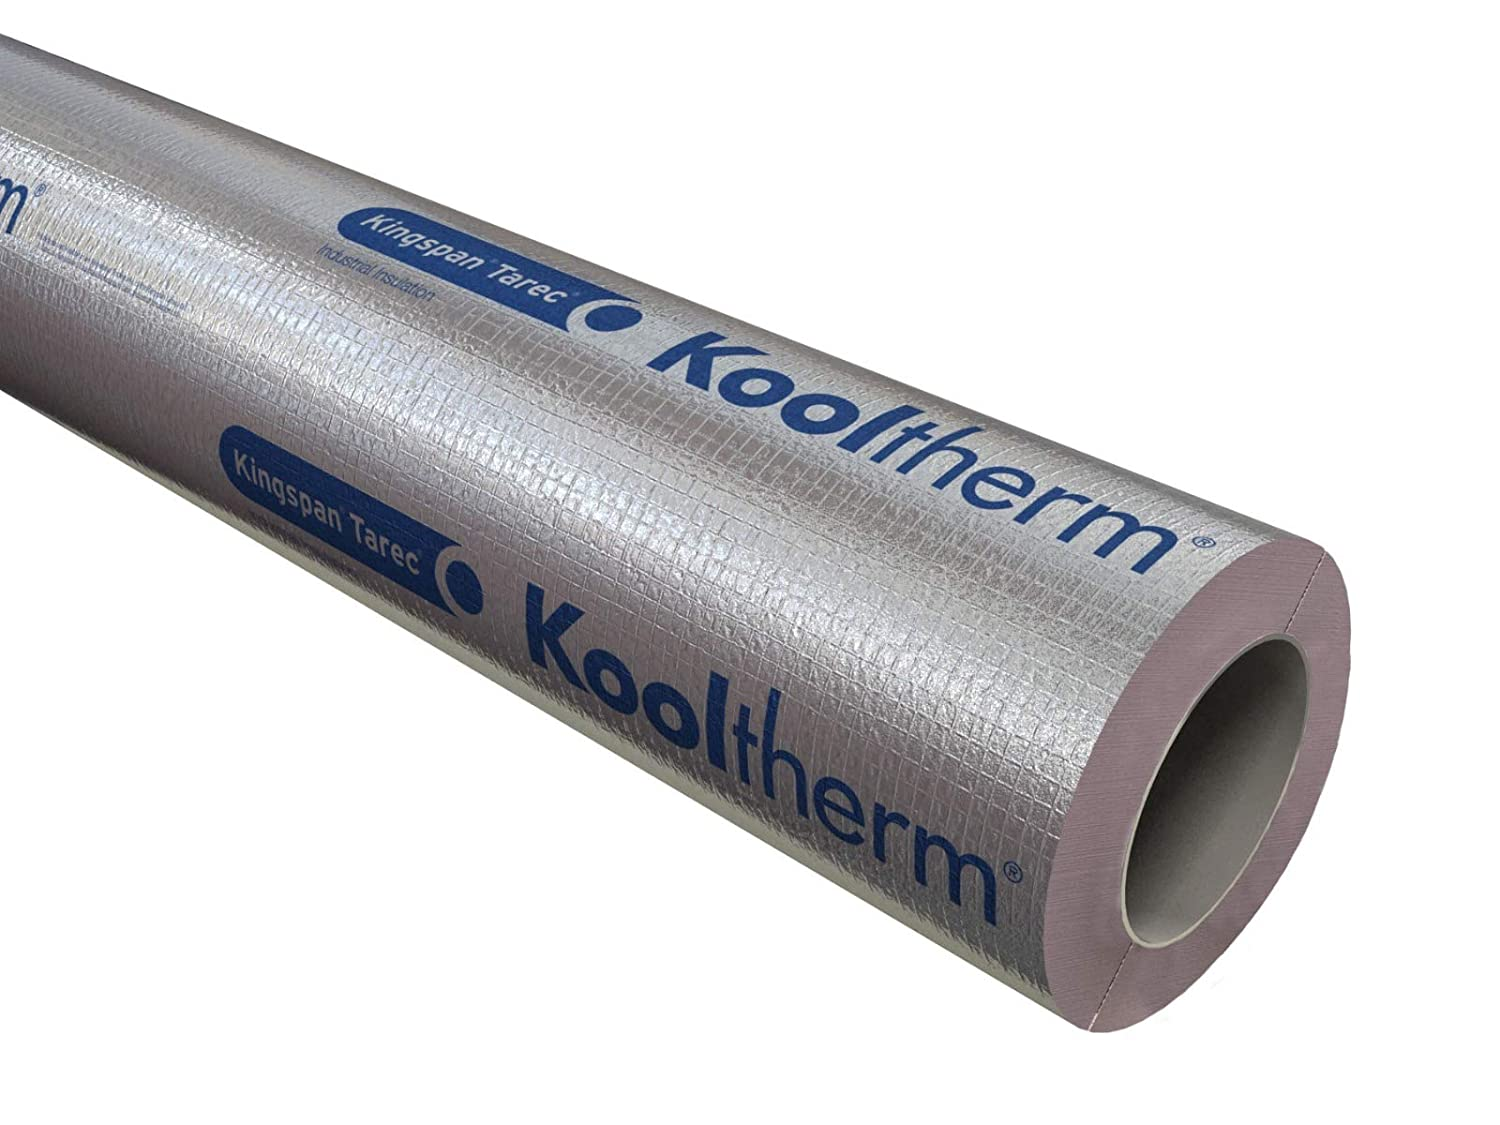 Kingspan Kooltherm Phenolic Pipe Insulation 1m Long-25mm-15mm